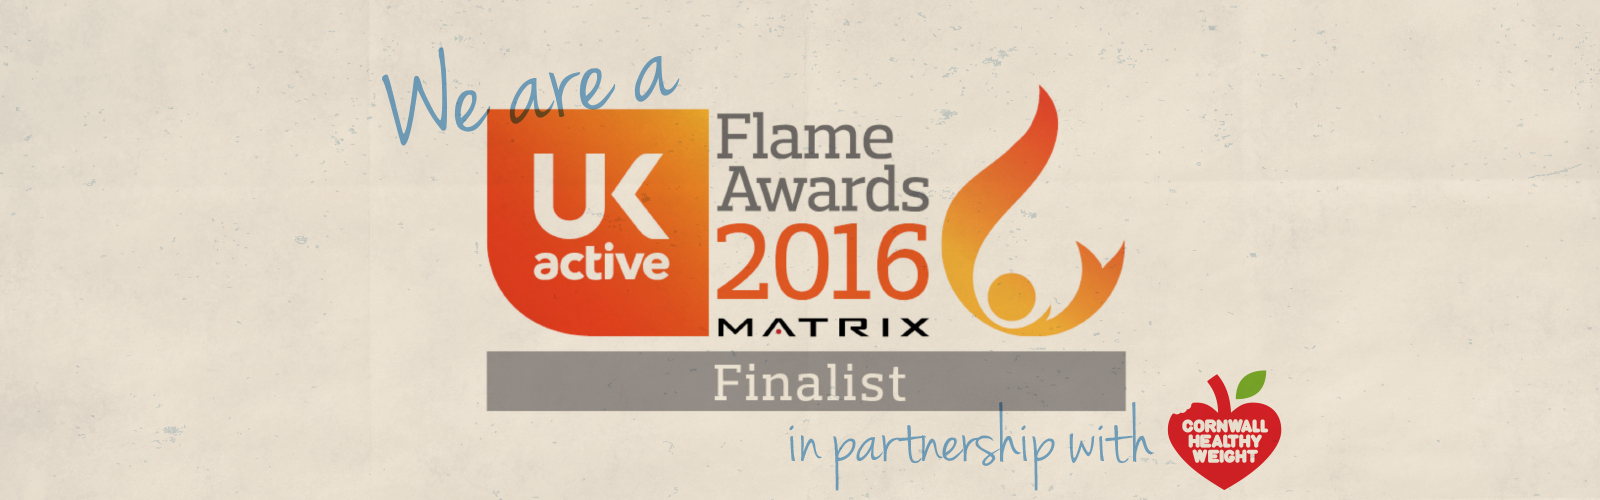 Flame Award Finalist Cover 1600 X 600px